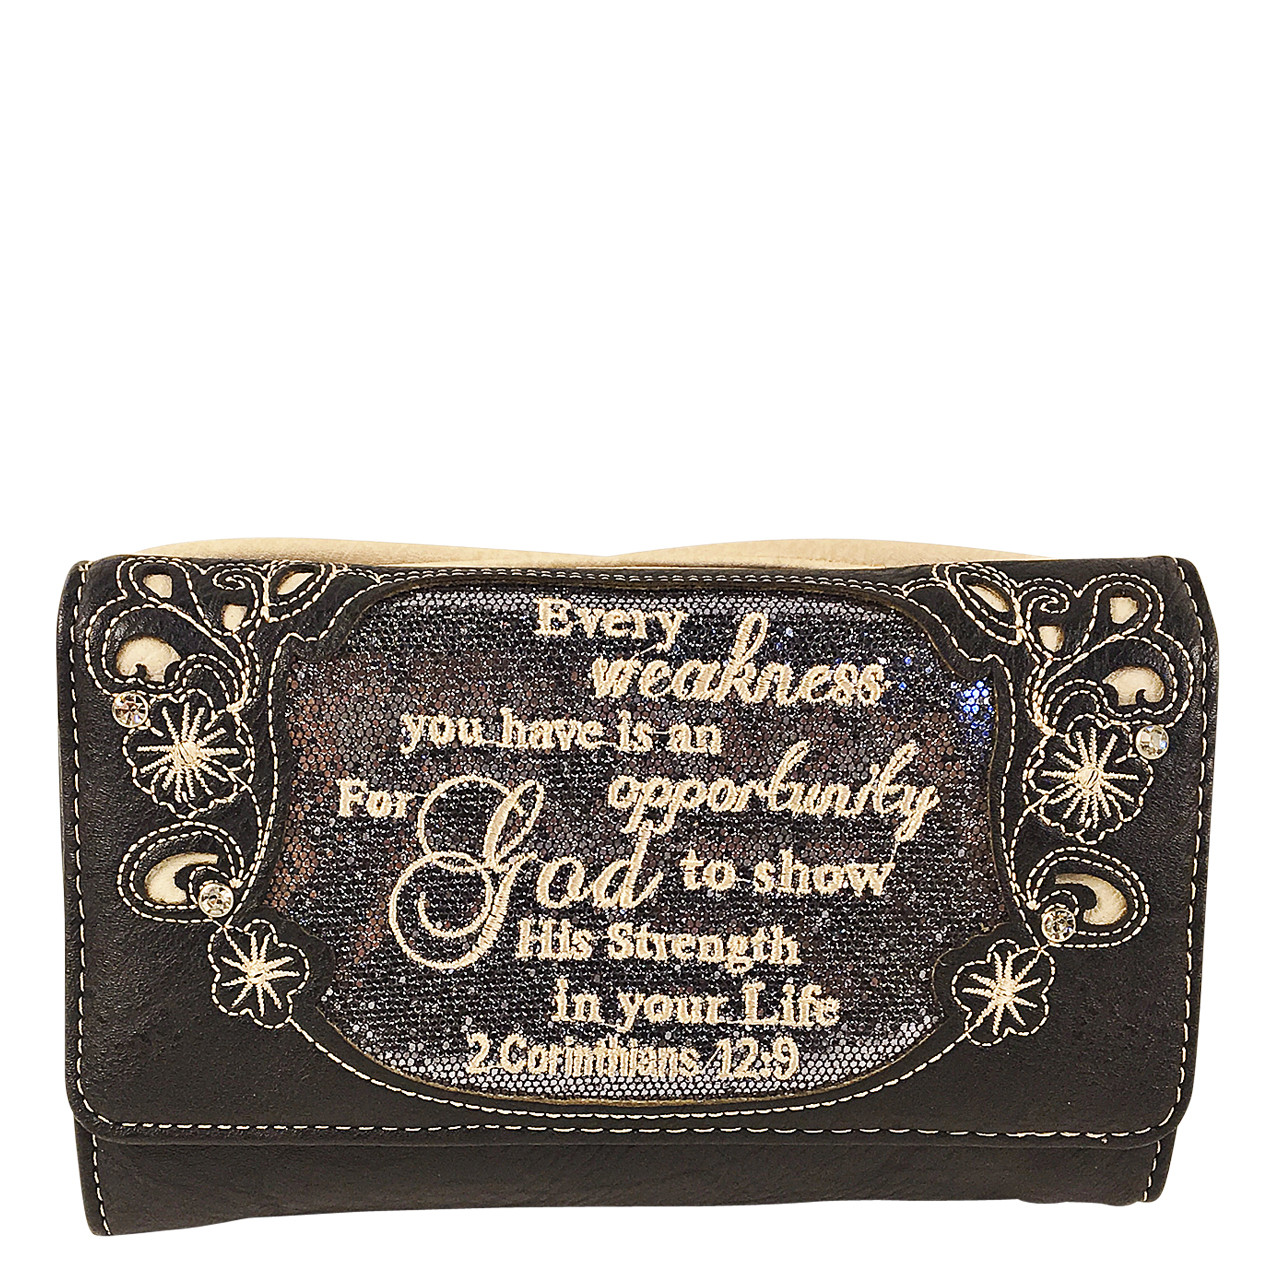 GRAY BIBLE LIFE QUOTE RHINESTONE STUDDED LOOK CLUTCH TRIFOLD WALLET